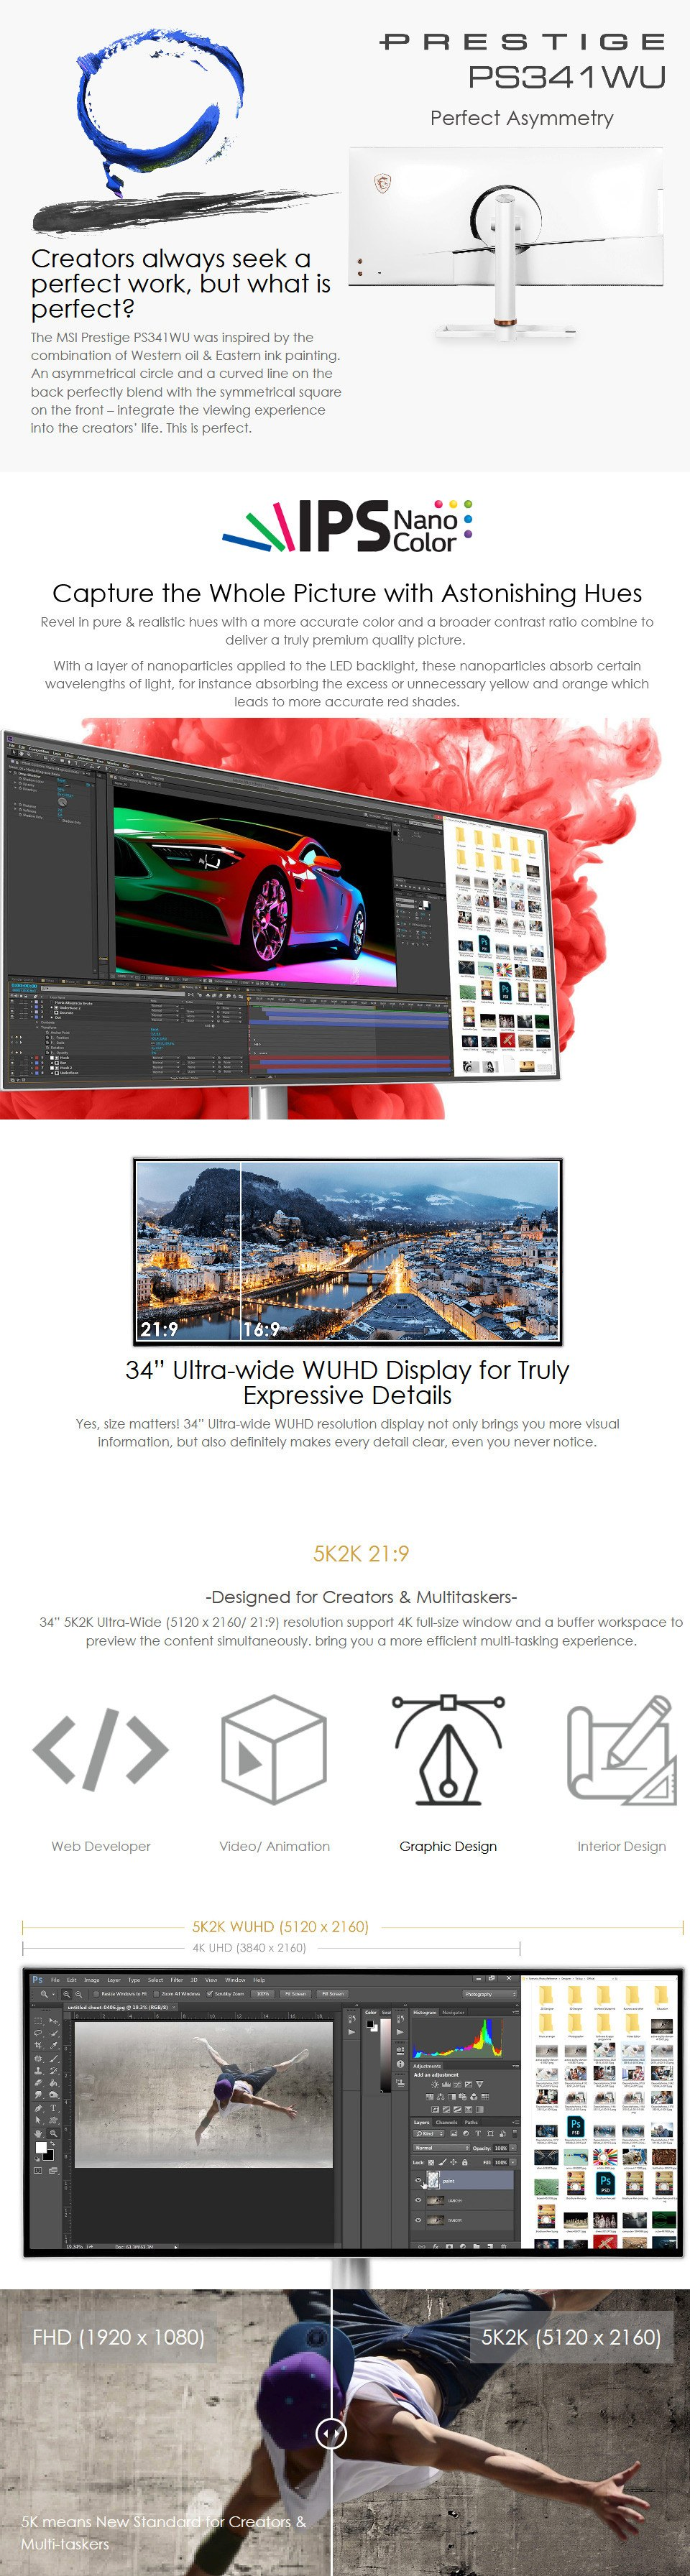 MSI Prestige PS341WU WUHD IPS 34in Monitor features